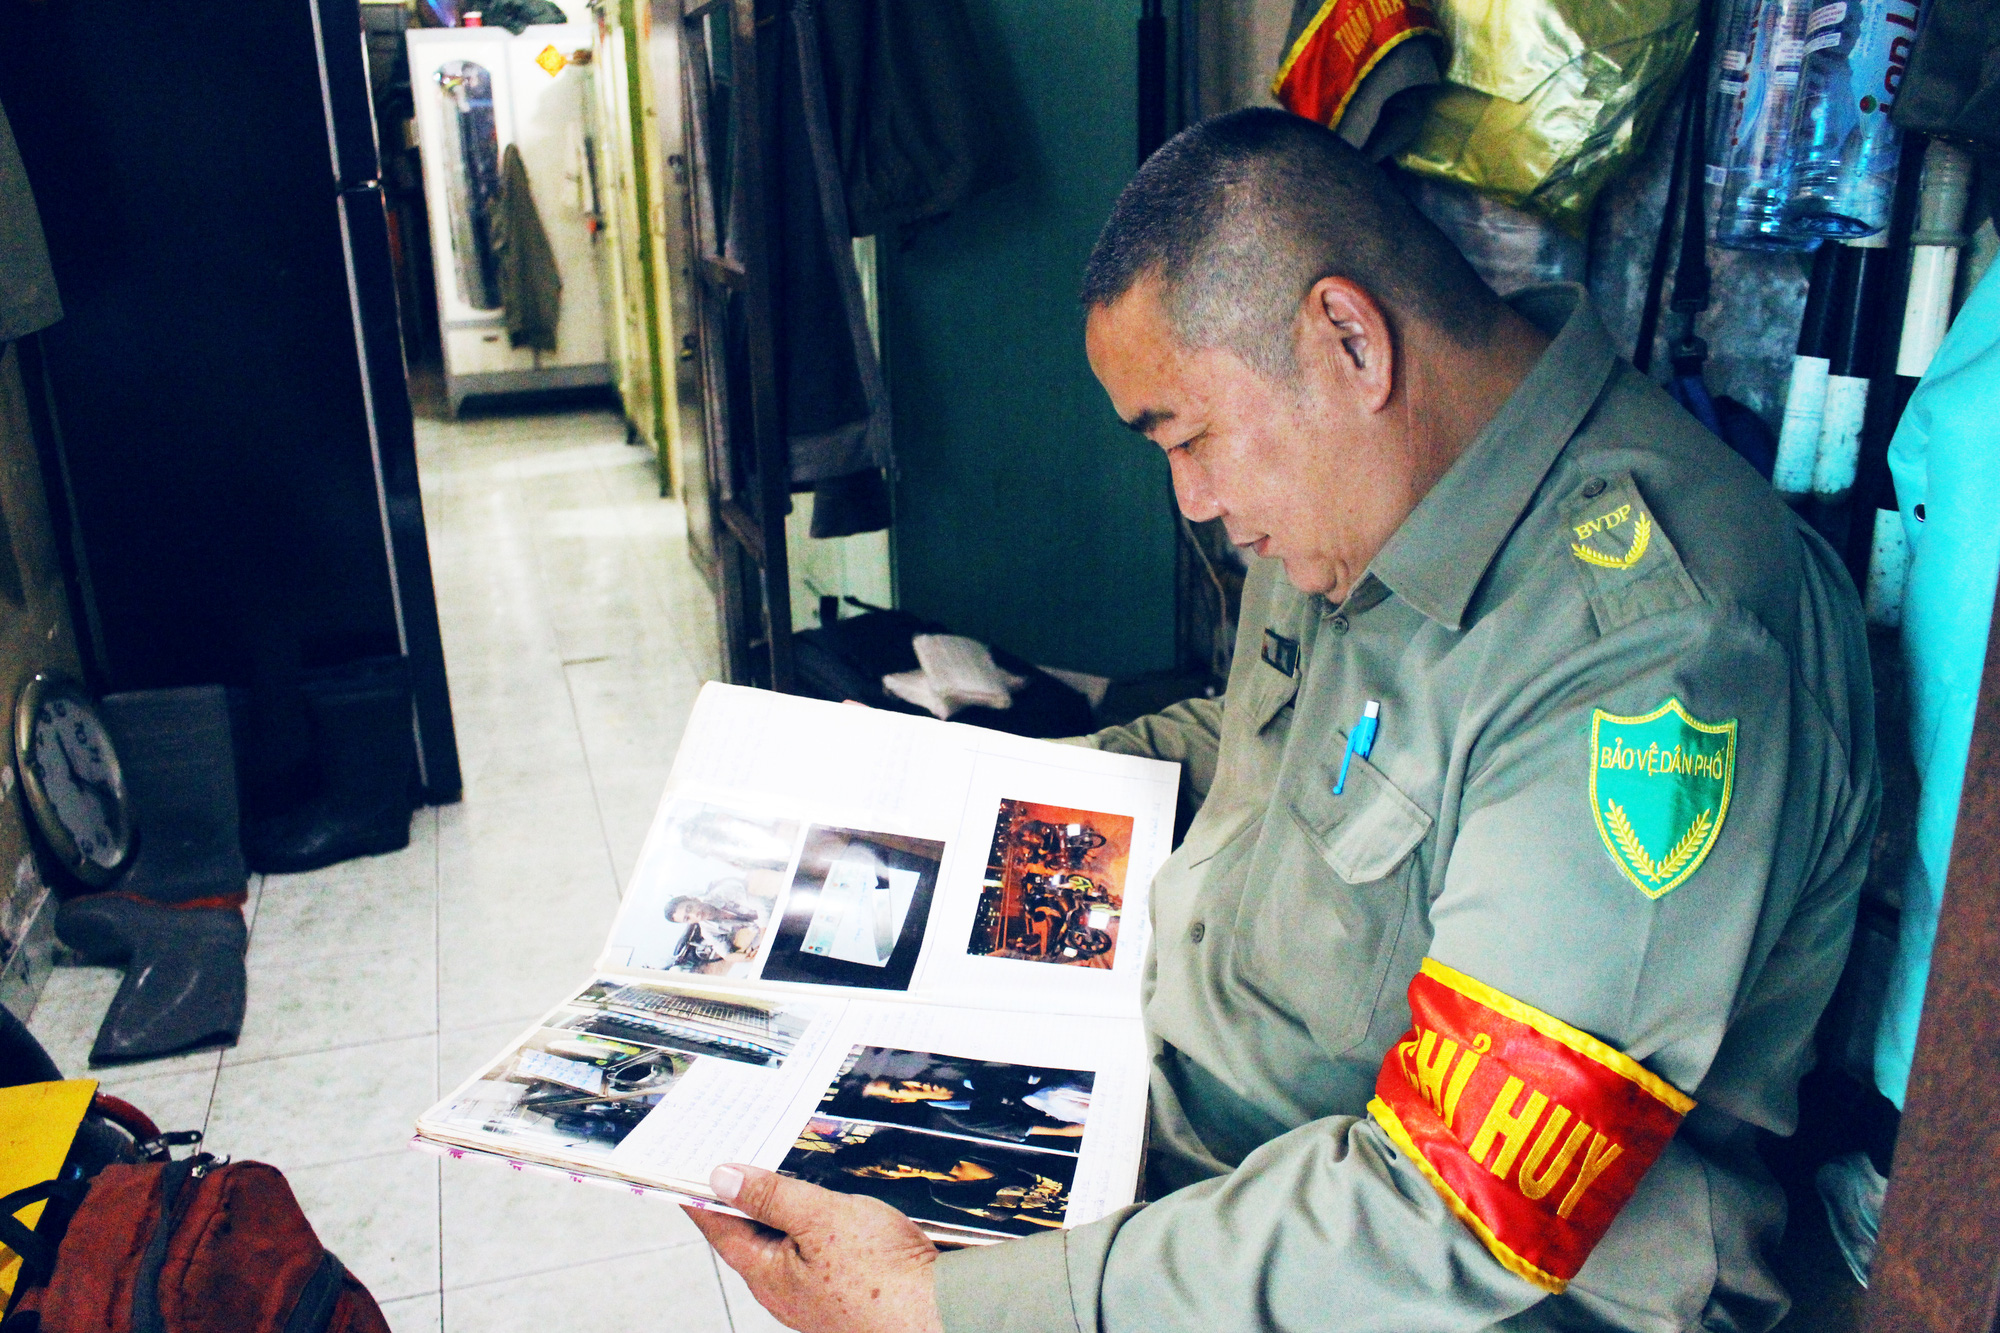 Ly Nhon Thanh looks at a journal where he keeps photos of his past cases of chasing after robbers. Photo: Kim Ut / Tuoi Tre